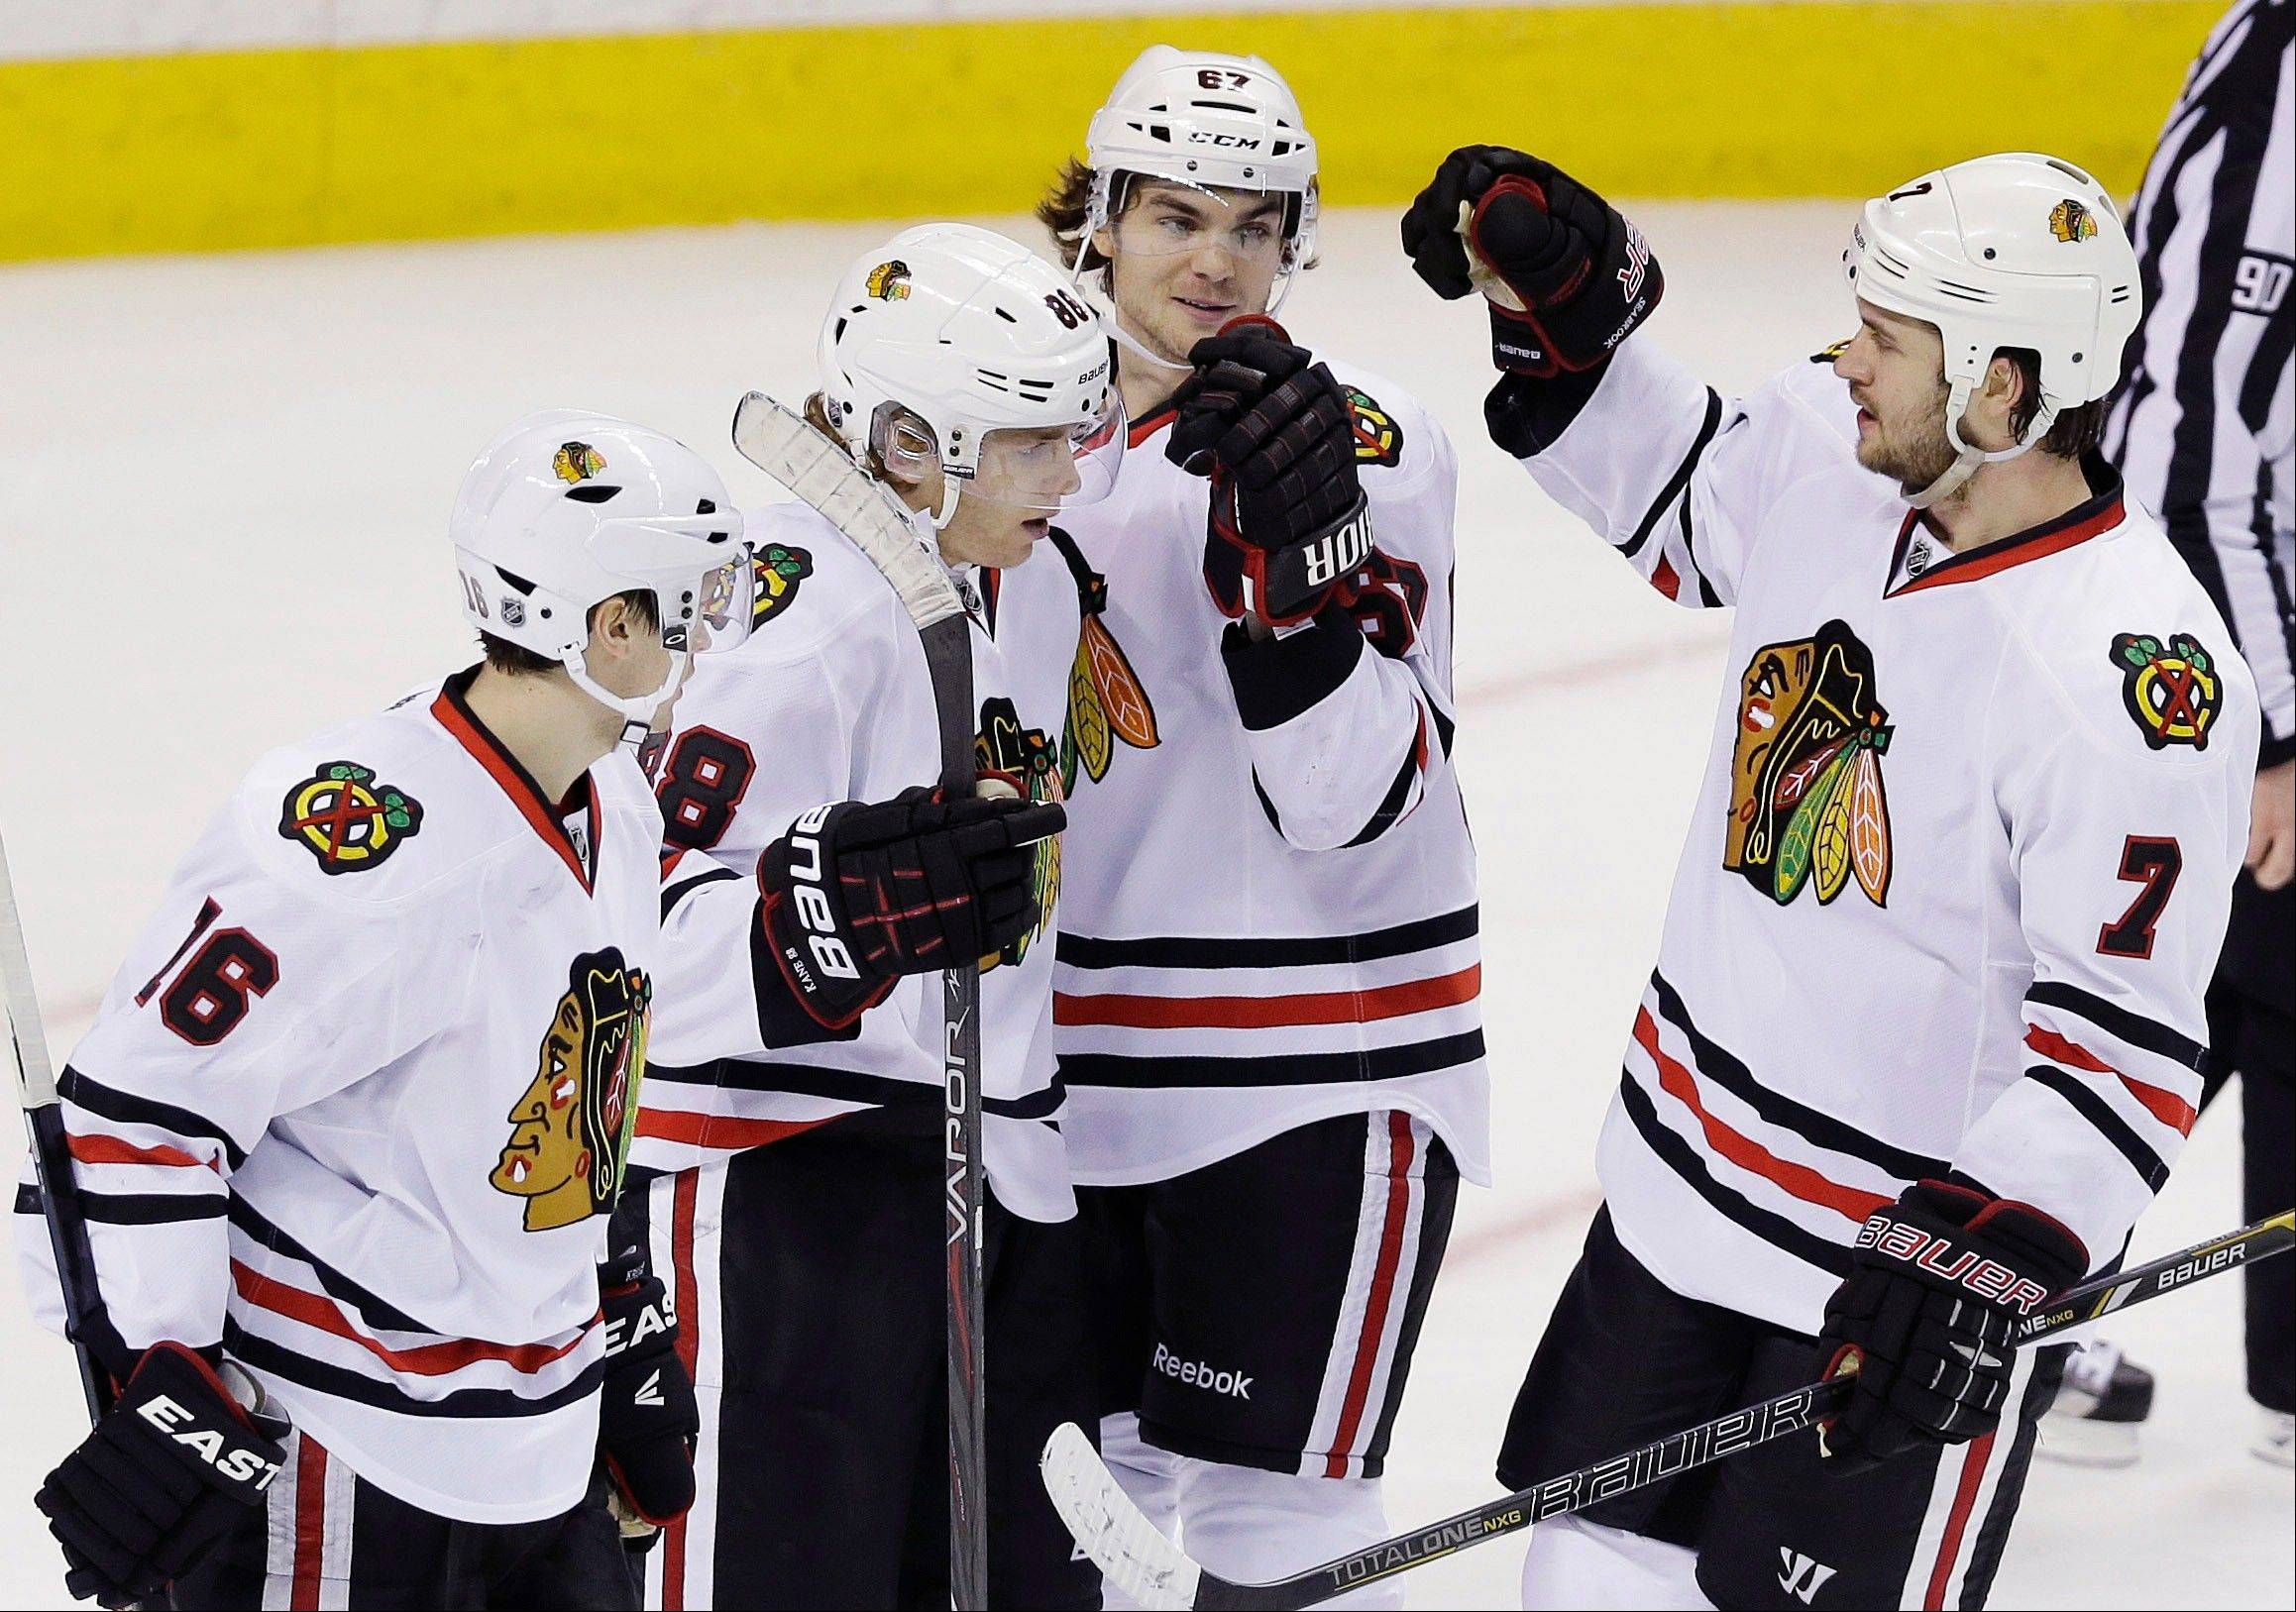 Chicago Blackhawks right wing Patrick Kane, second from left, is congratulated by teammates after scoring against the San Jose Sharks during the third period of an NHL hockey game in San Jose, Calif., Tuesday, Feb. 5, 2013. Chicago won 5-3.